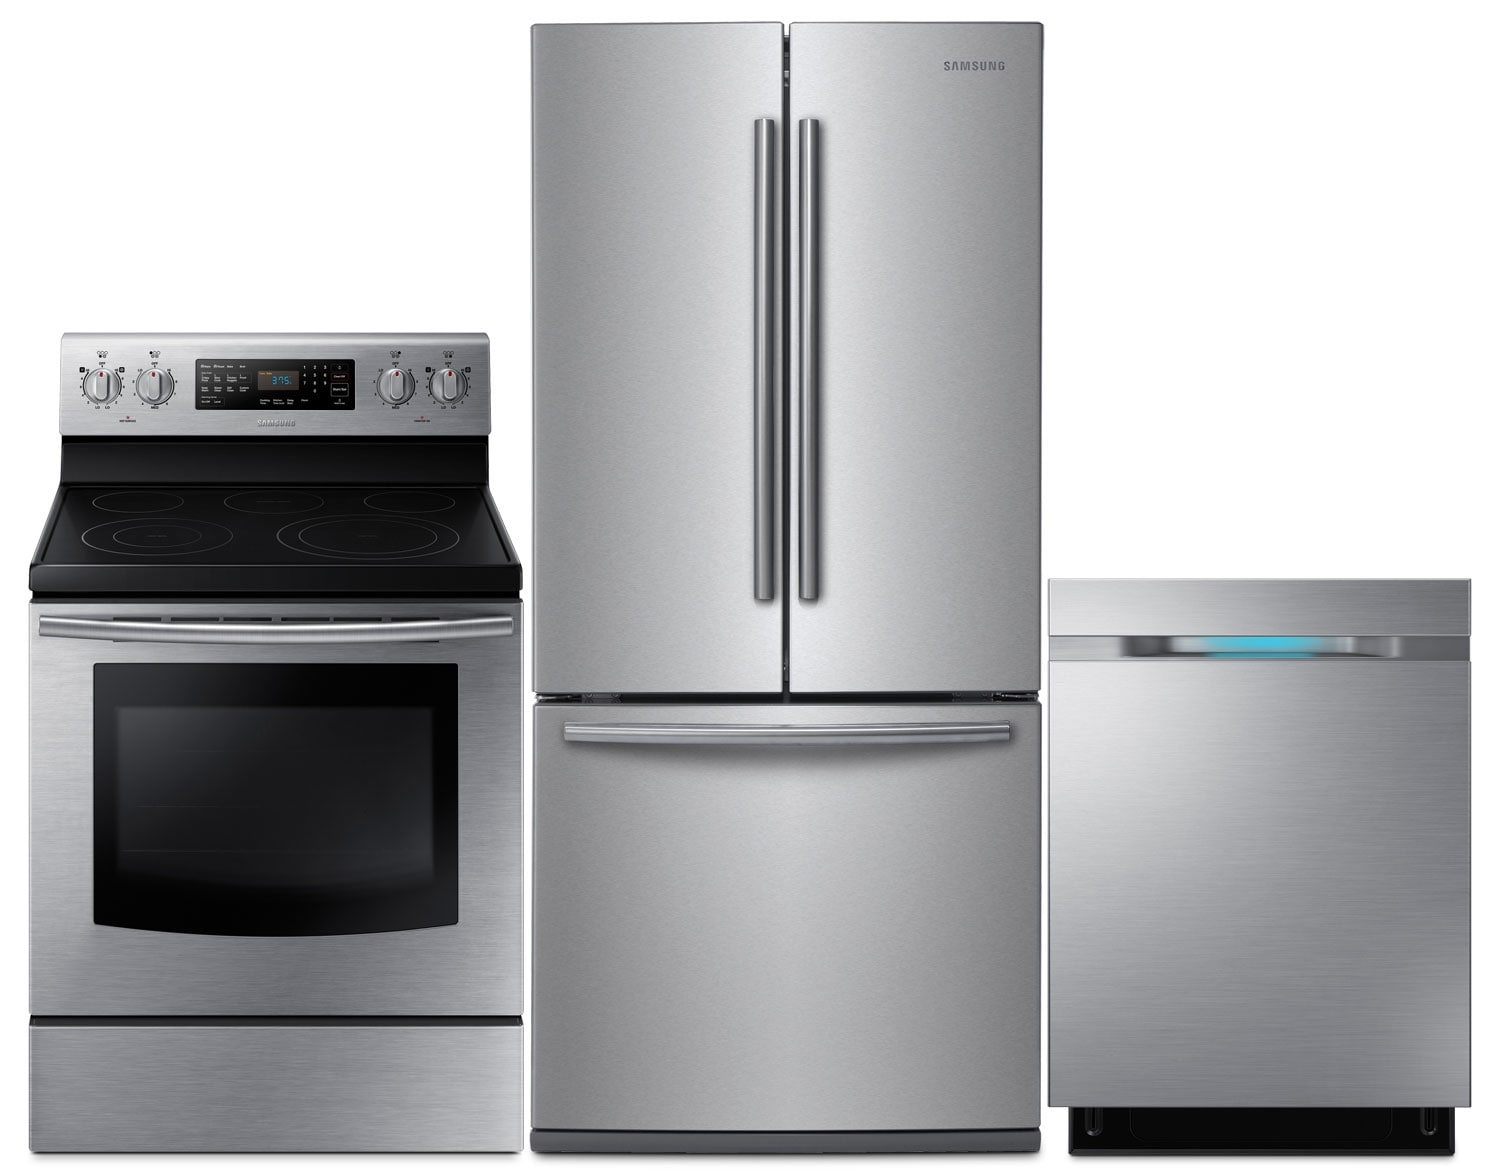 Samsung 22 Cu. Ft. Refrigerator, 5.9 Cu. Ft. Electric Range and Built-In Dishwasher